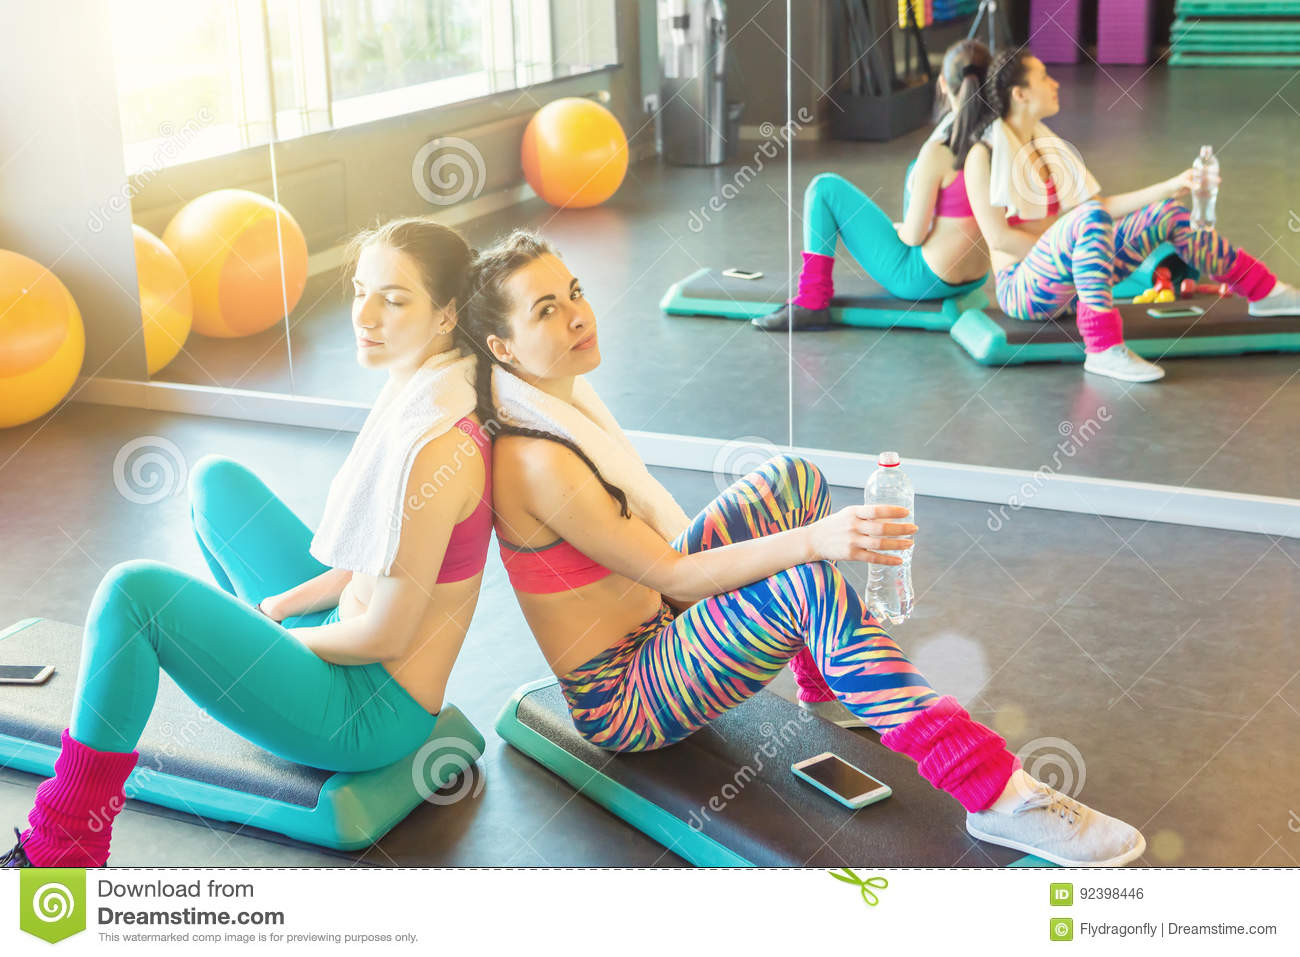 Two tired sports girls resting after active workout.